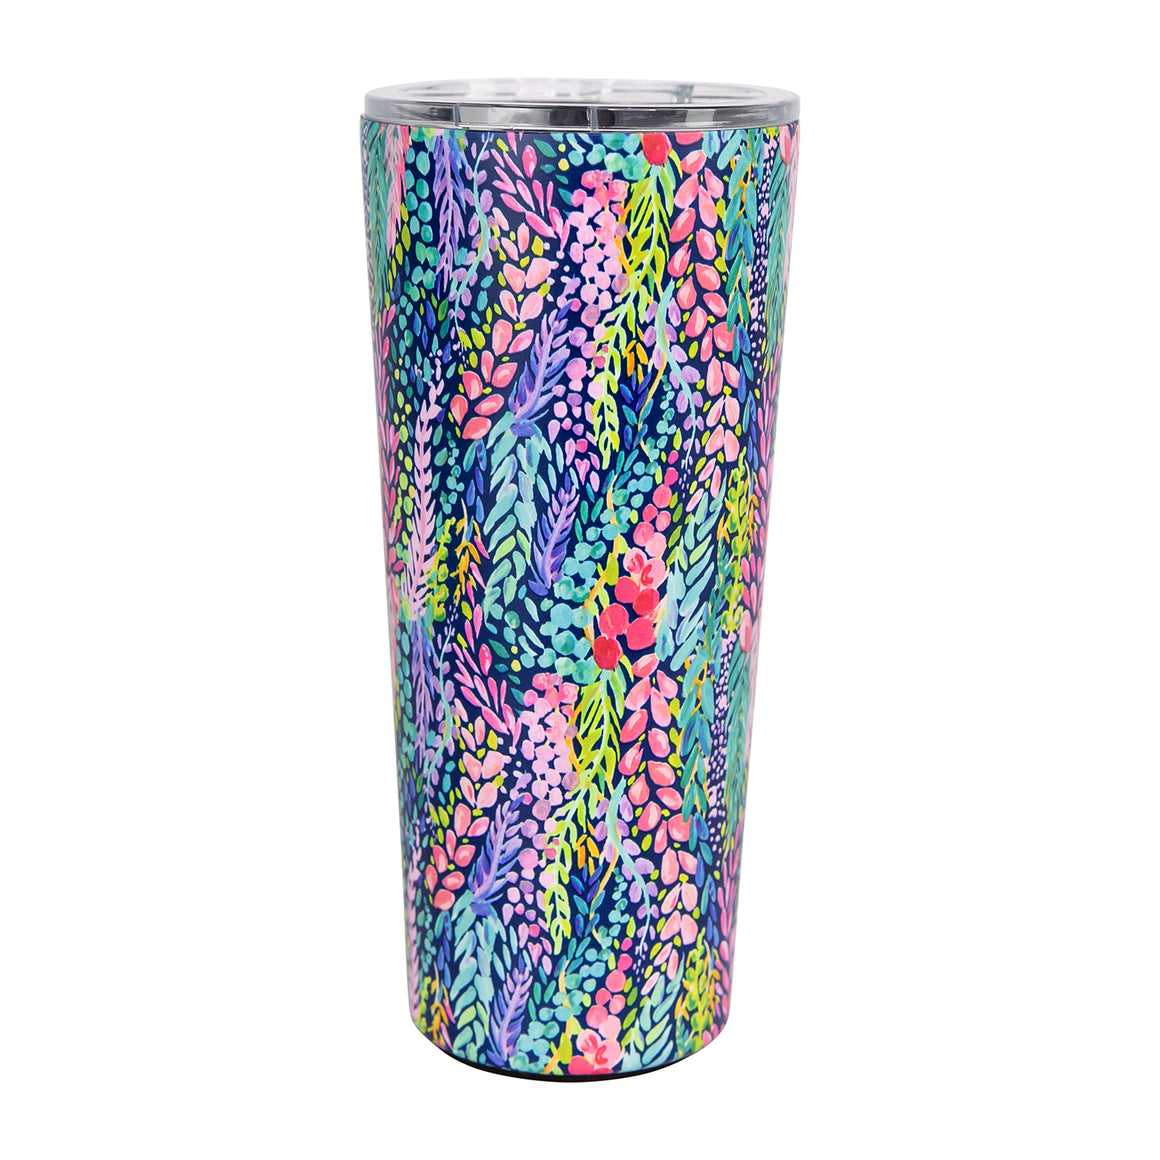 Resort Collection | Stainless Large Tumbler | Wisteria Waves